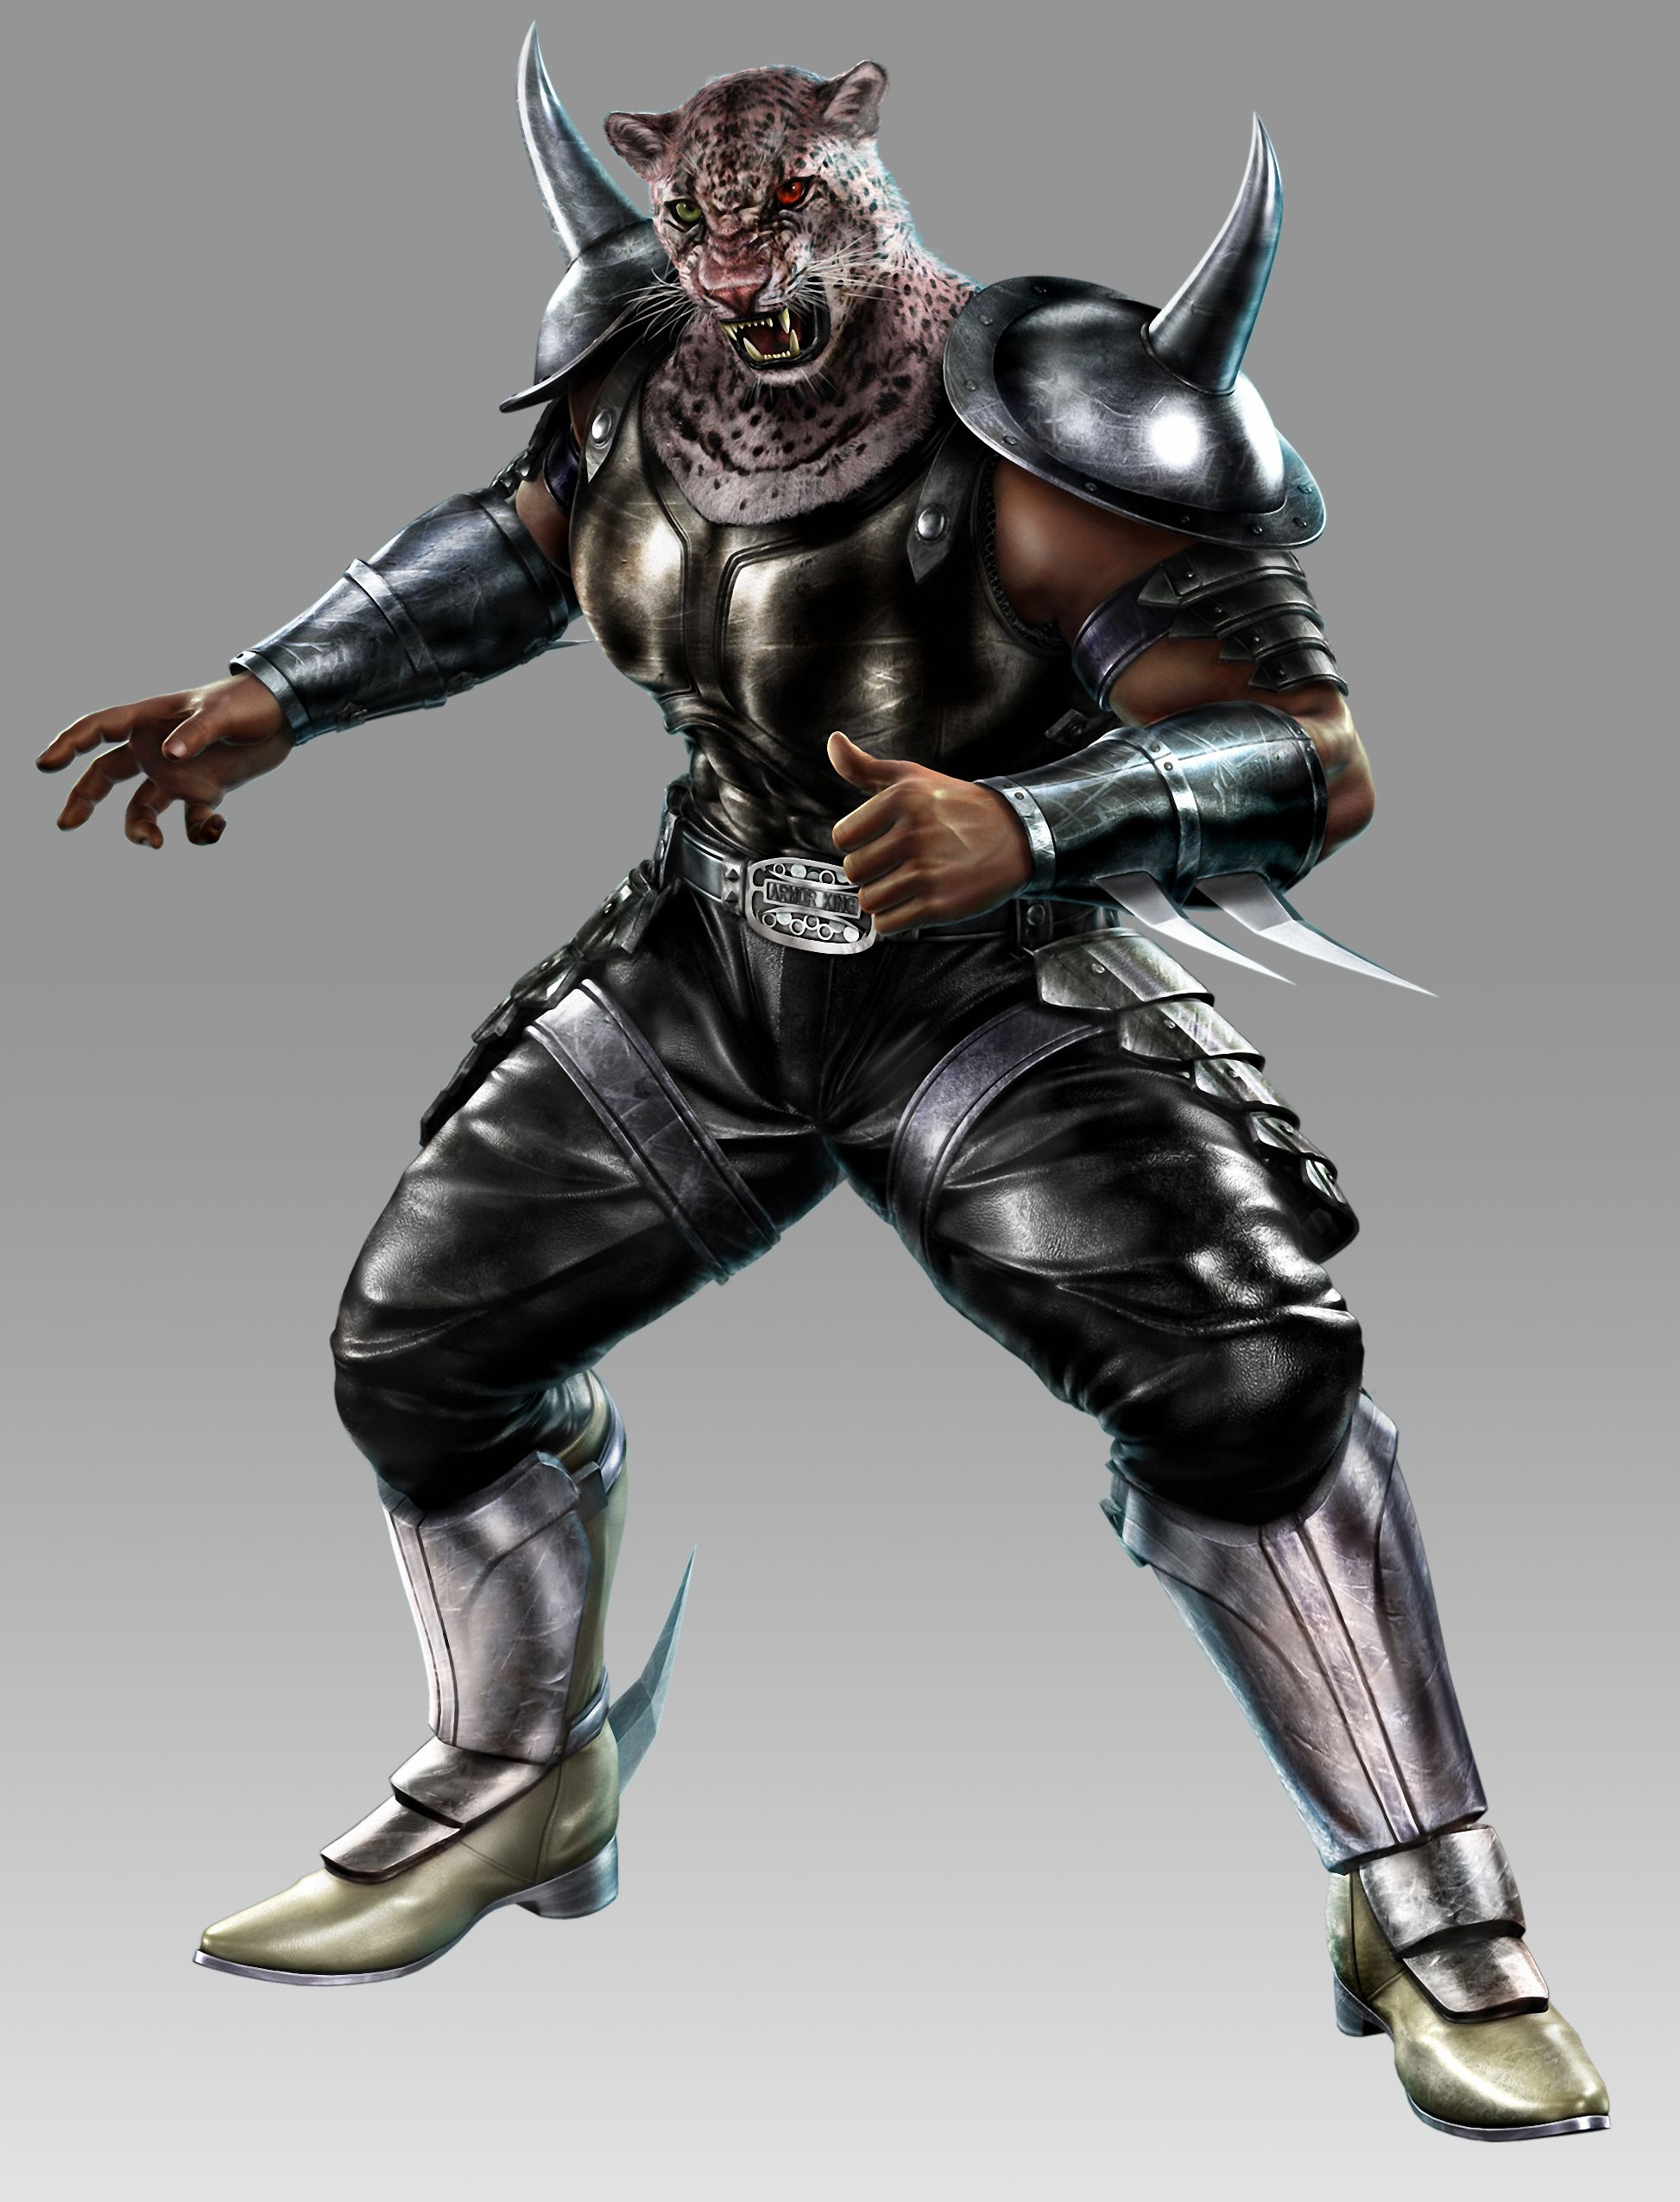 armor king art tekken 6 art gallery